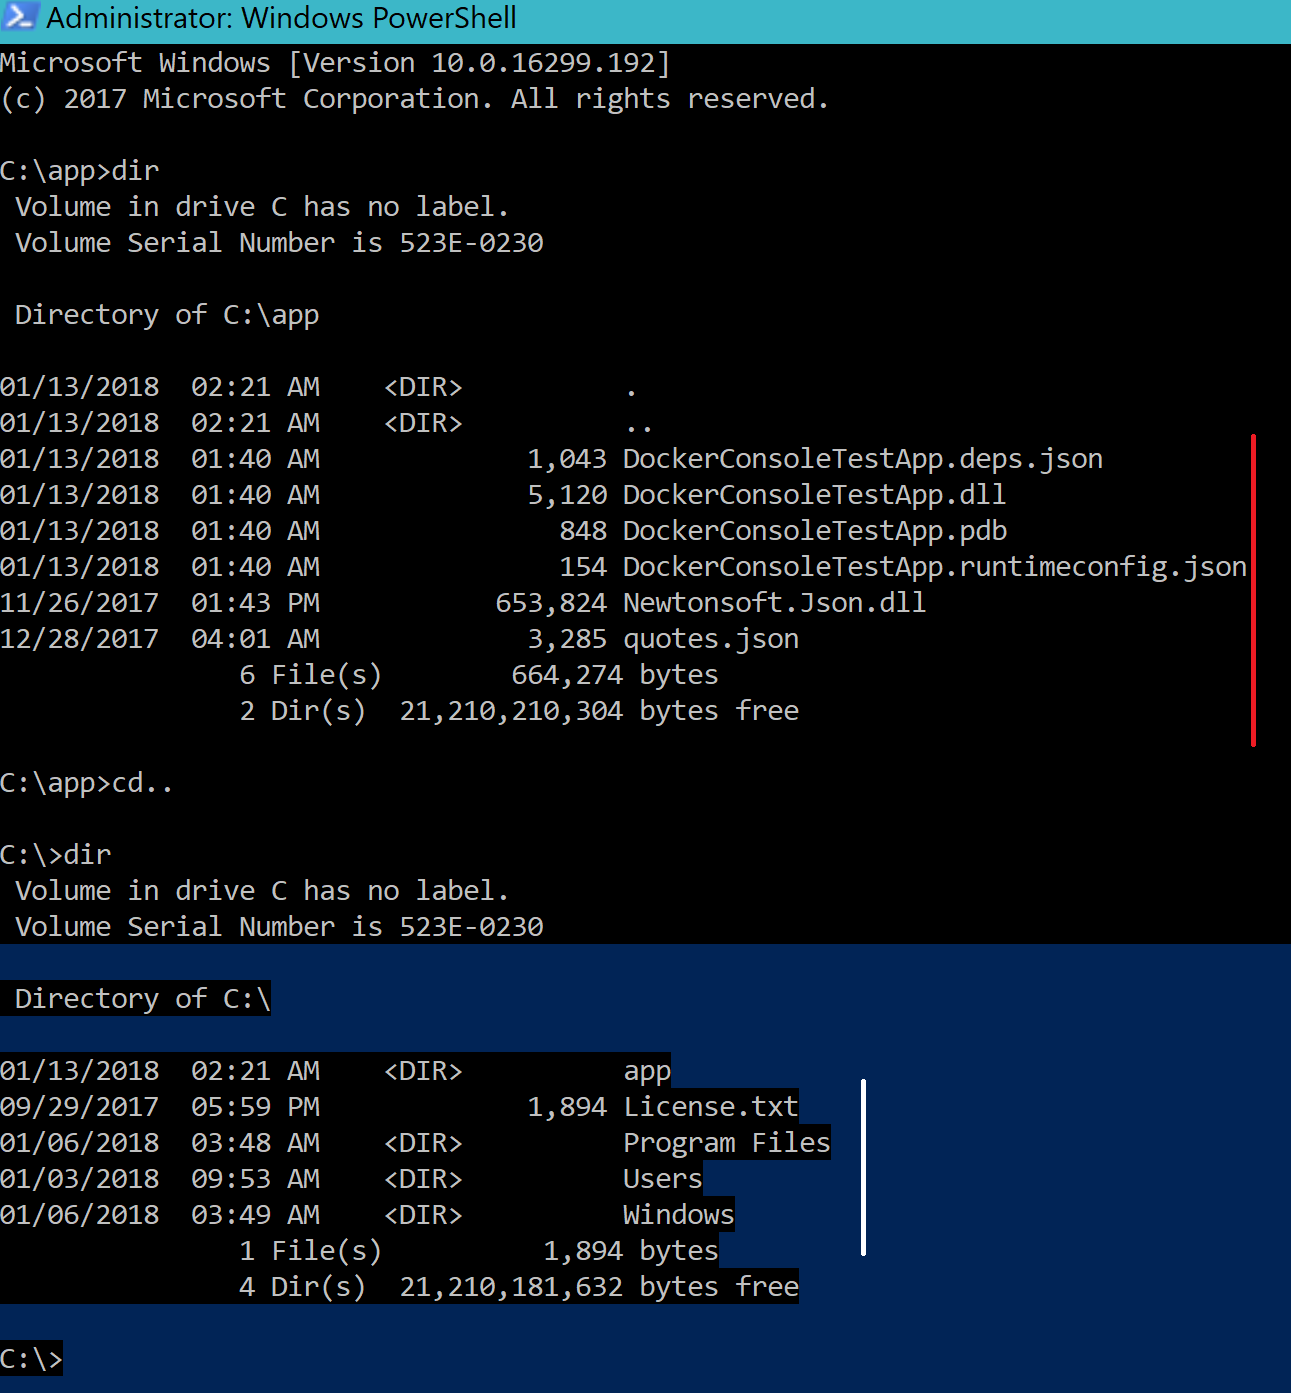 Getting Started With Docker For Windows - Containerize a C# Console